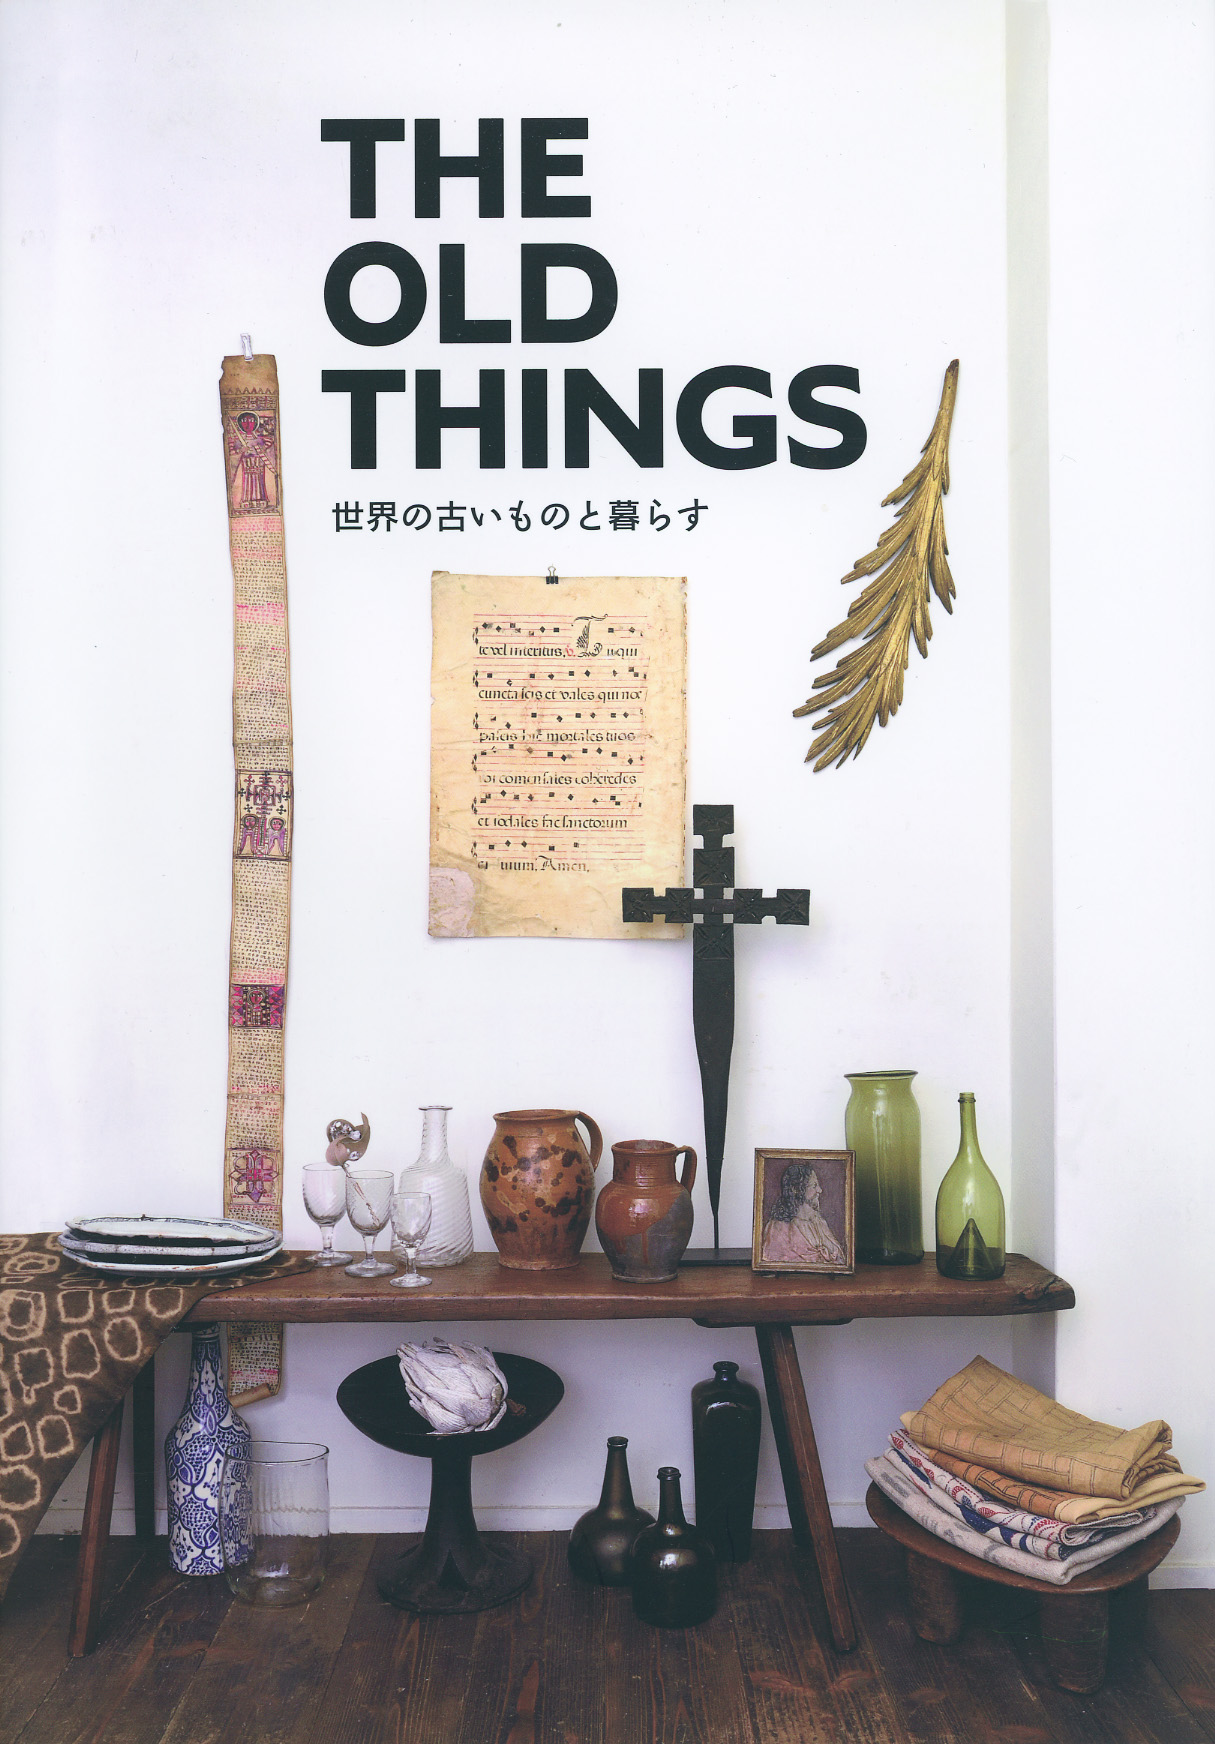 THE OLD THINGS 世界の古いものと暮らす